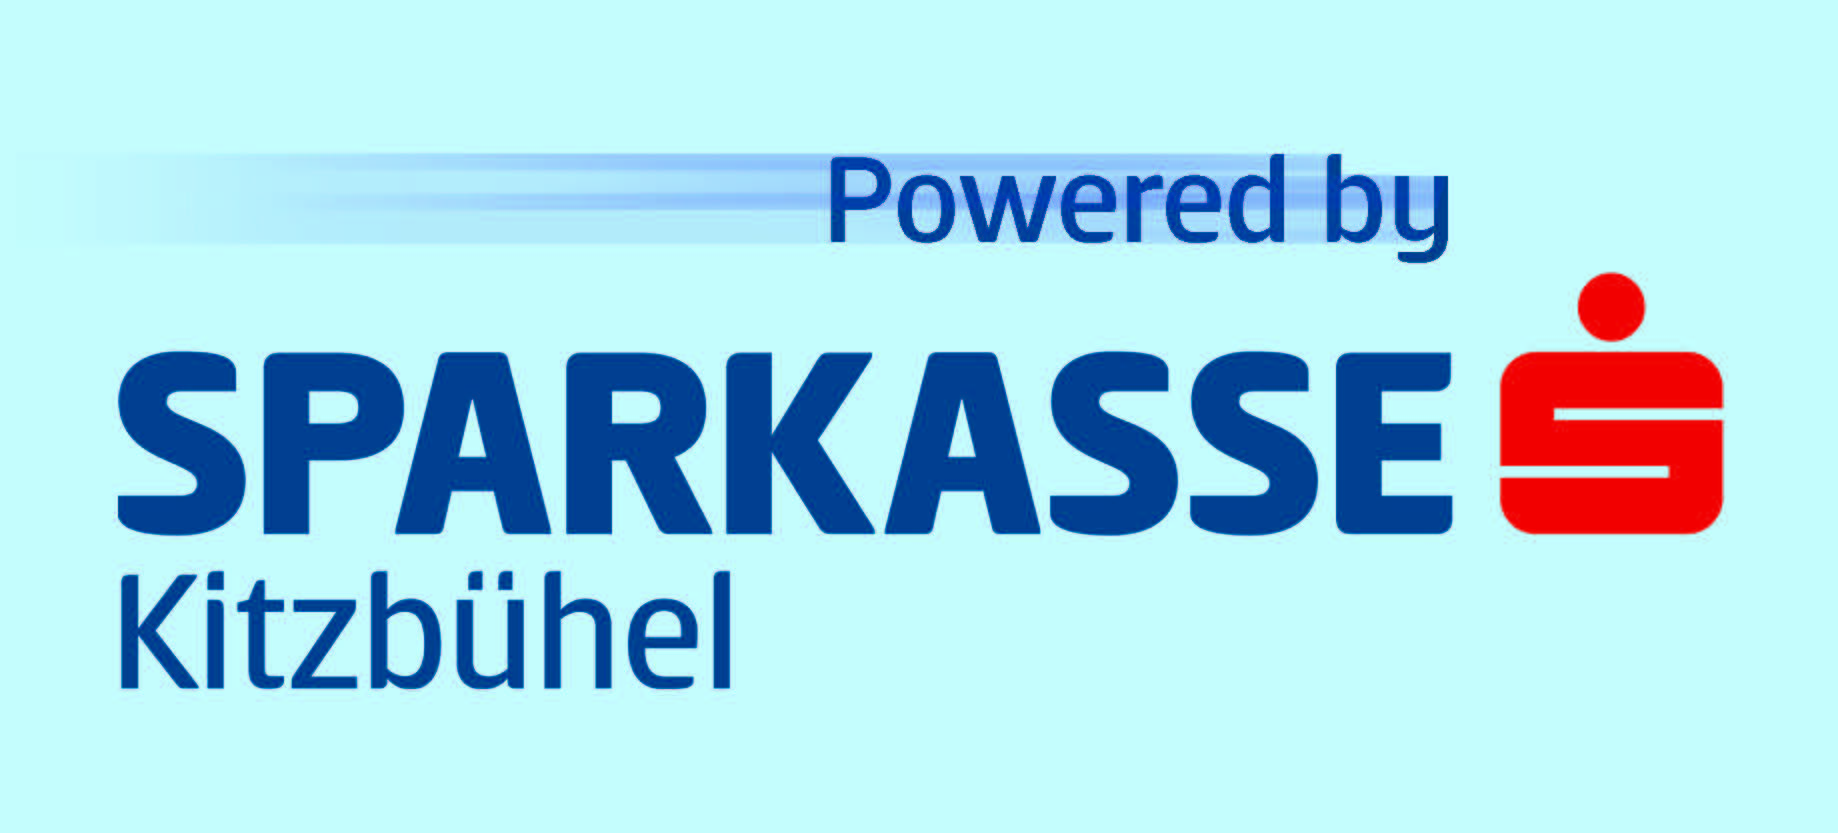 Powered by SPARKASSE new 16cmBreite